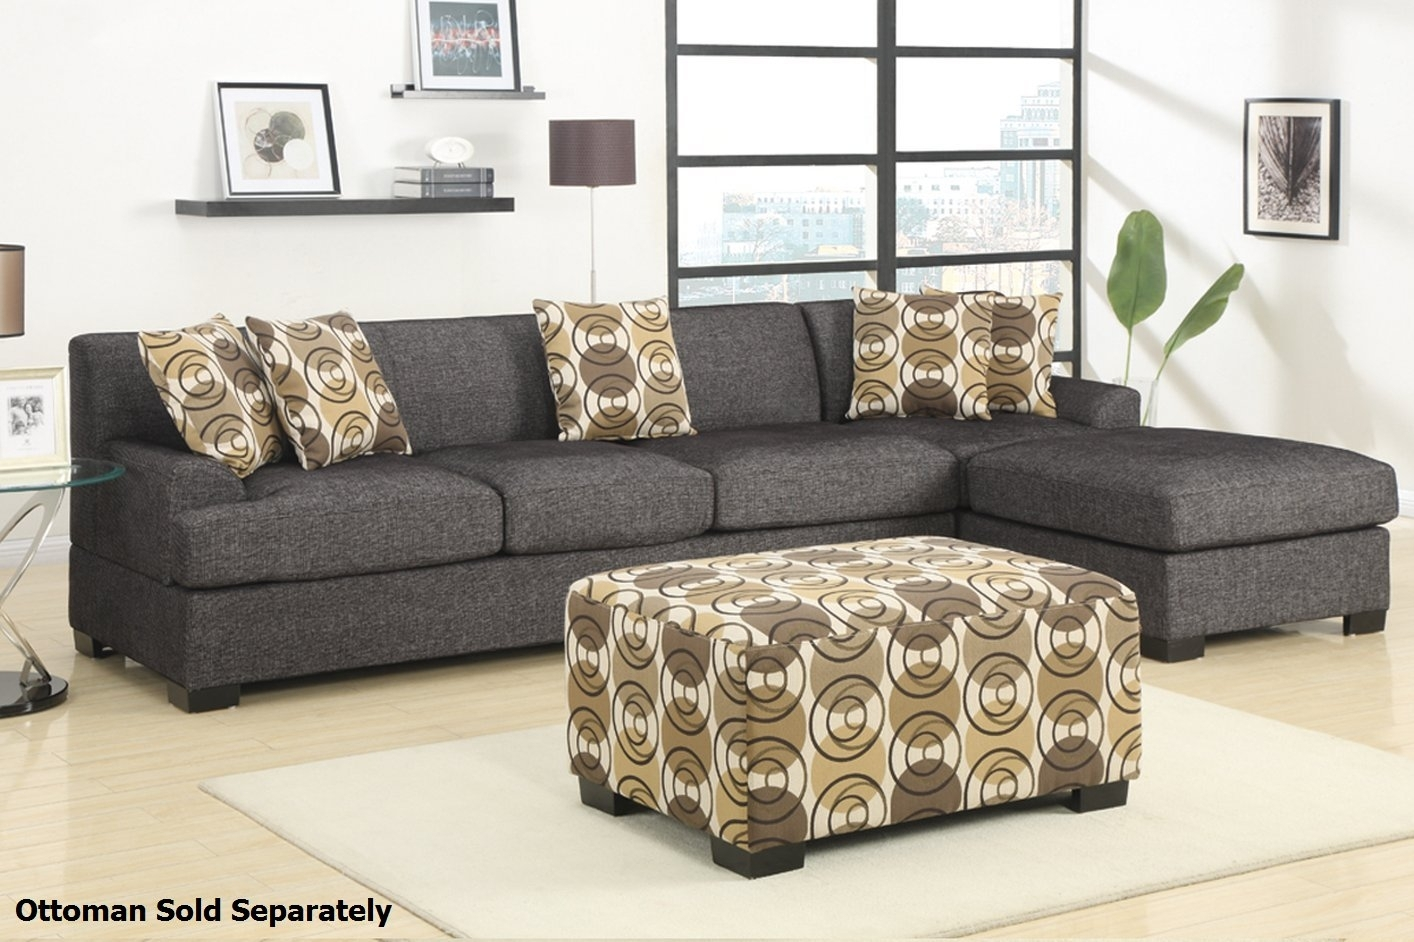 Montreal Iii Grey Fabric Sectional Sofa – Steal A Sofa Furniture In Montreal Sectional Sofas (View 10 of 10)